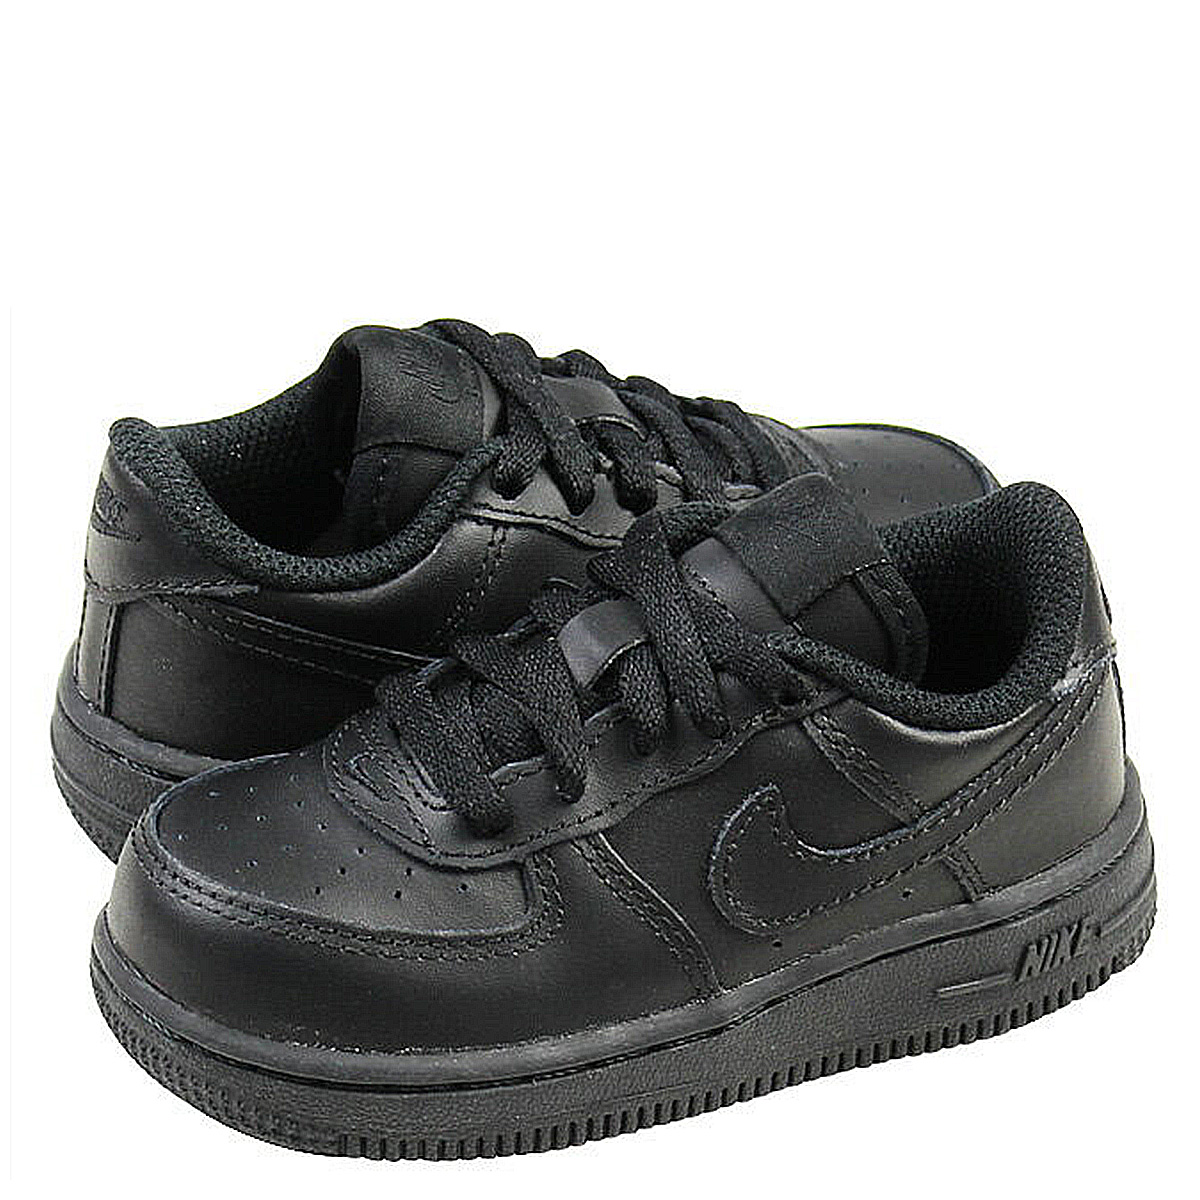 1eaeae9e562c20 Nike NIKE baby kids AIR FORCE 1 LOW TD sneakers air force 1 low toddler  leather junior kids BABY TODDLER 314194-009 black  12   26 new stock    regular  ☆ ...